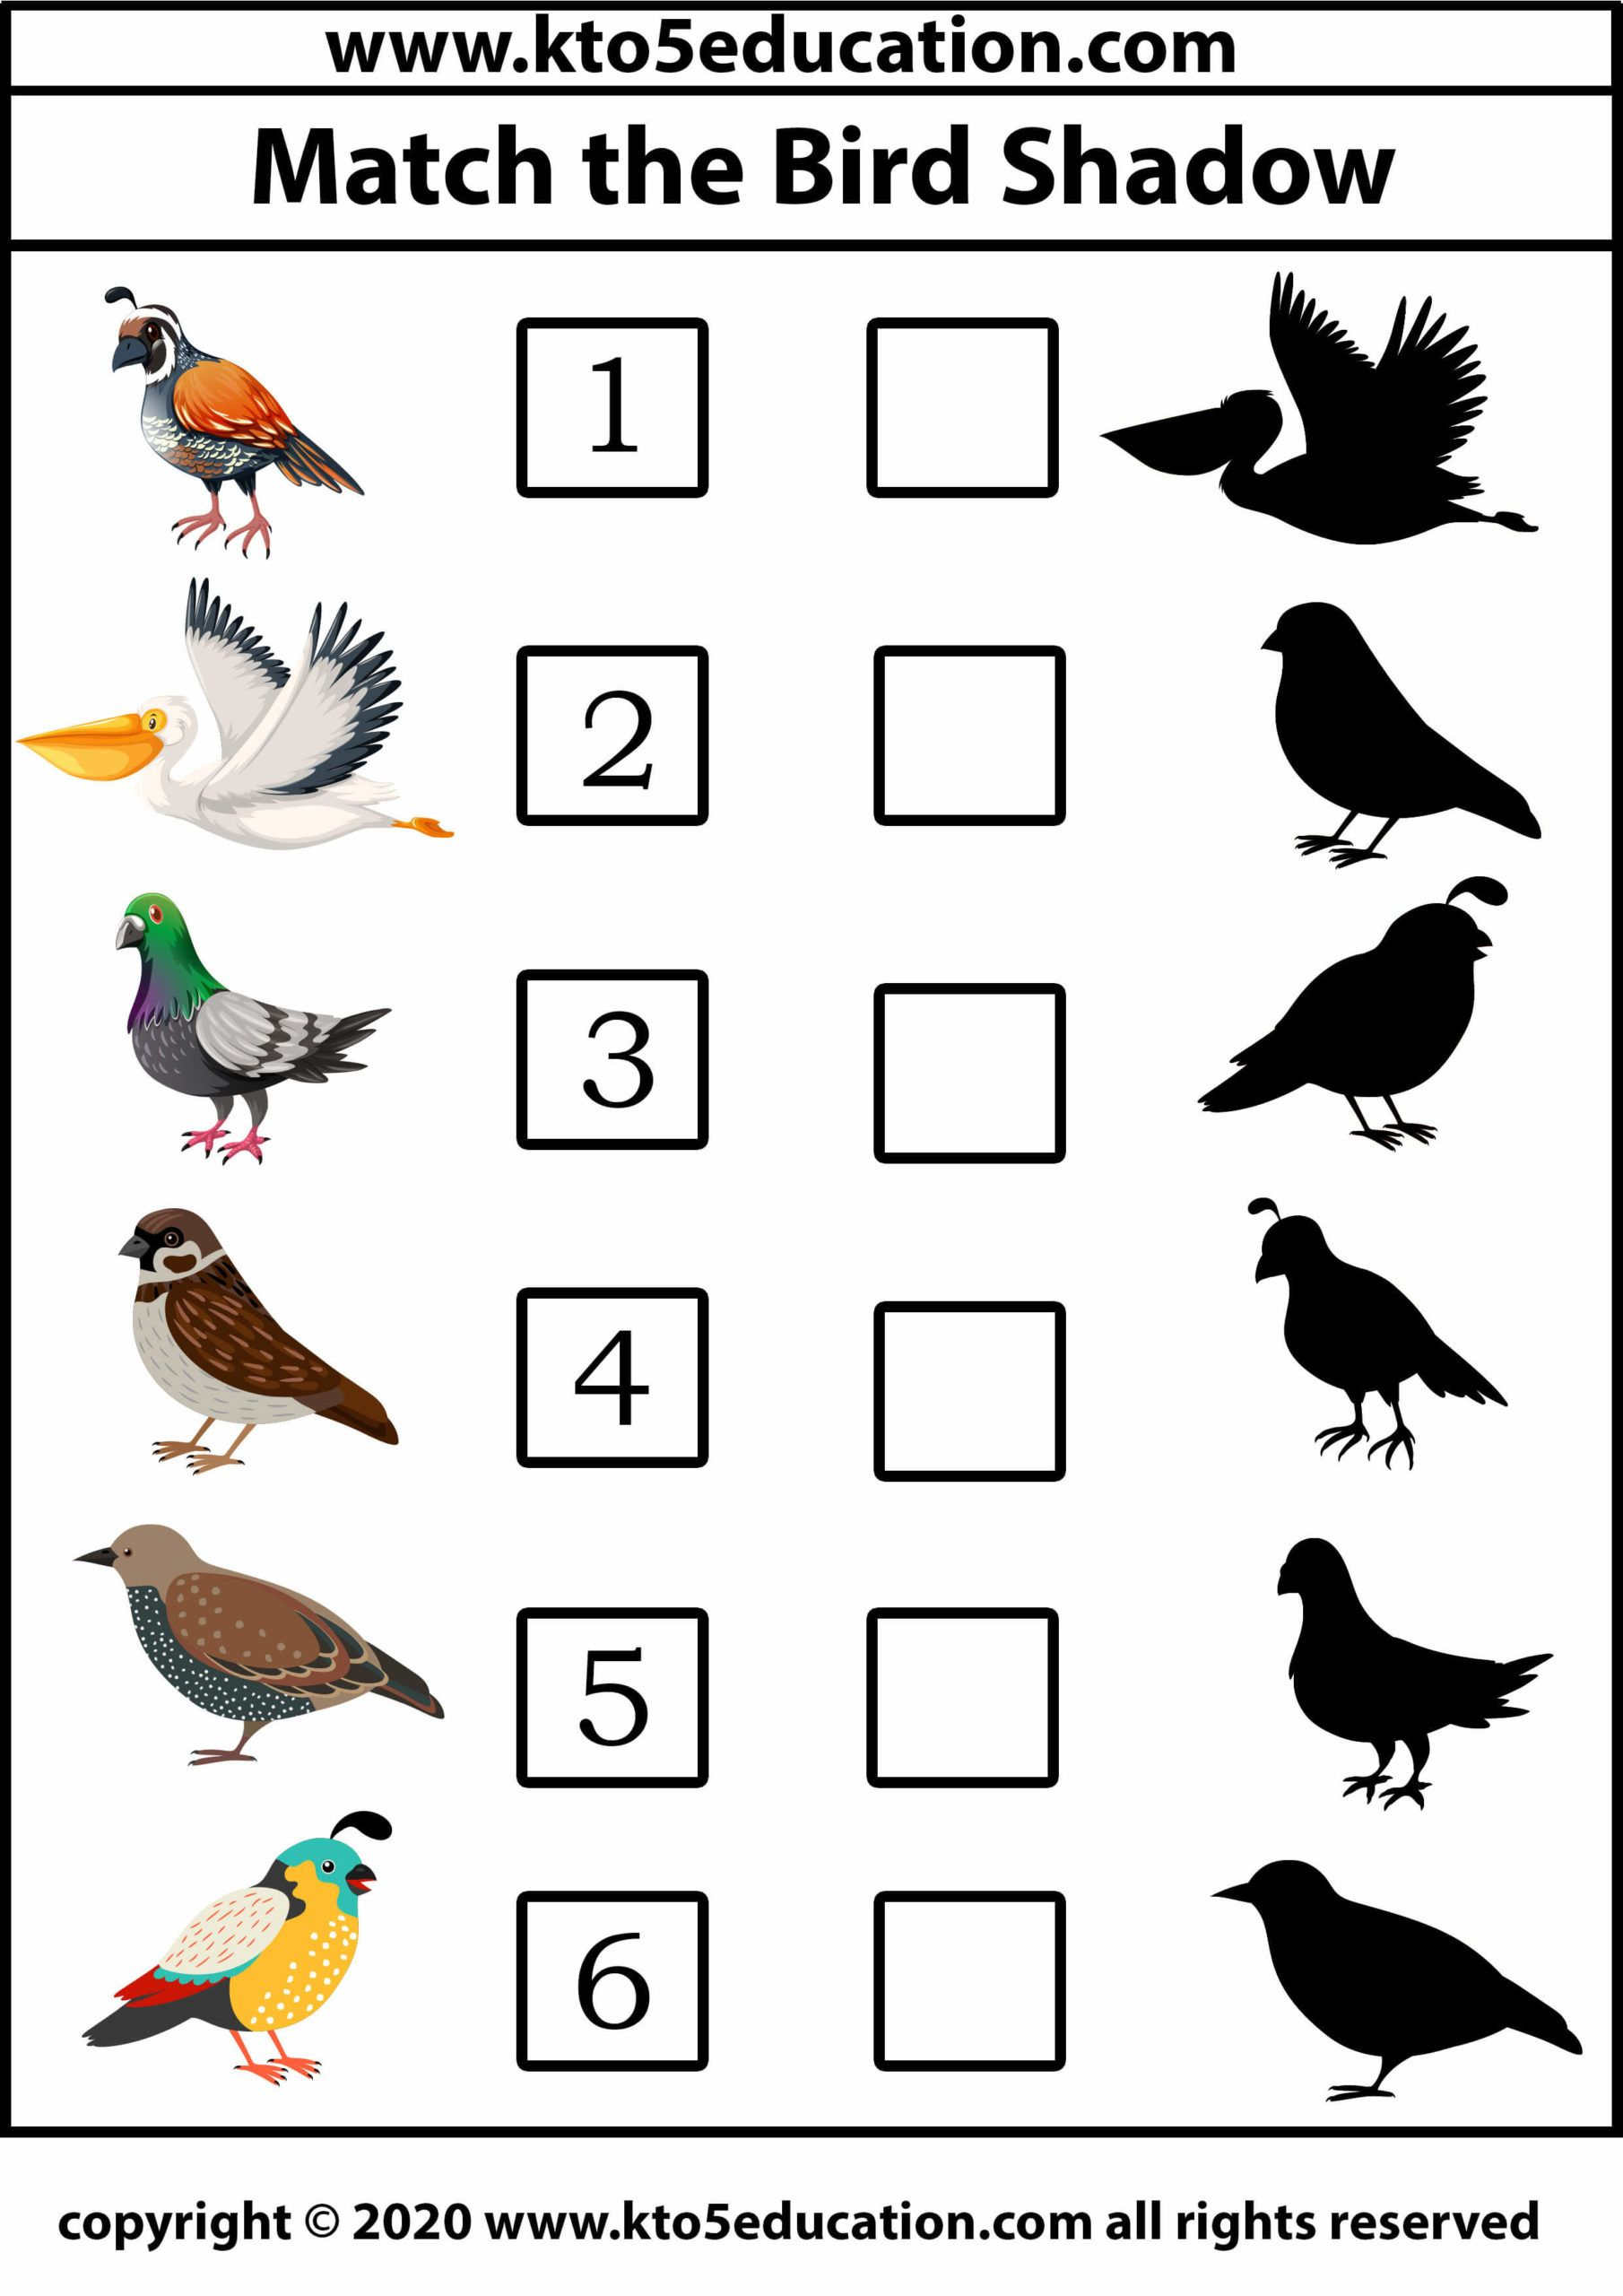 Match The Bird Shadow 2 Worksheet Template In